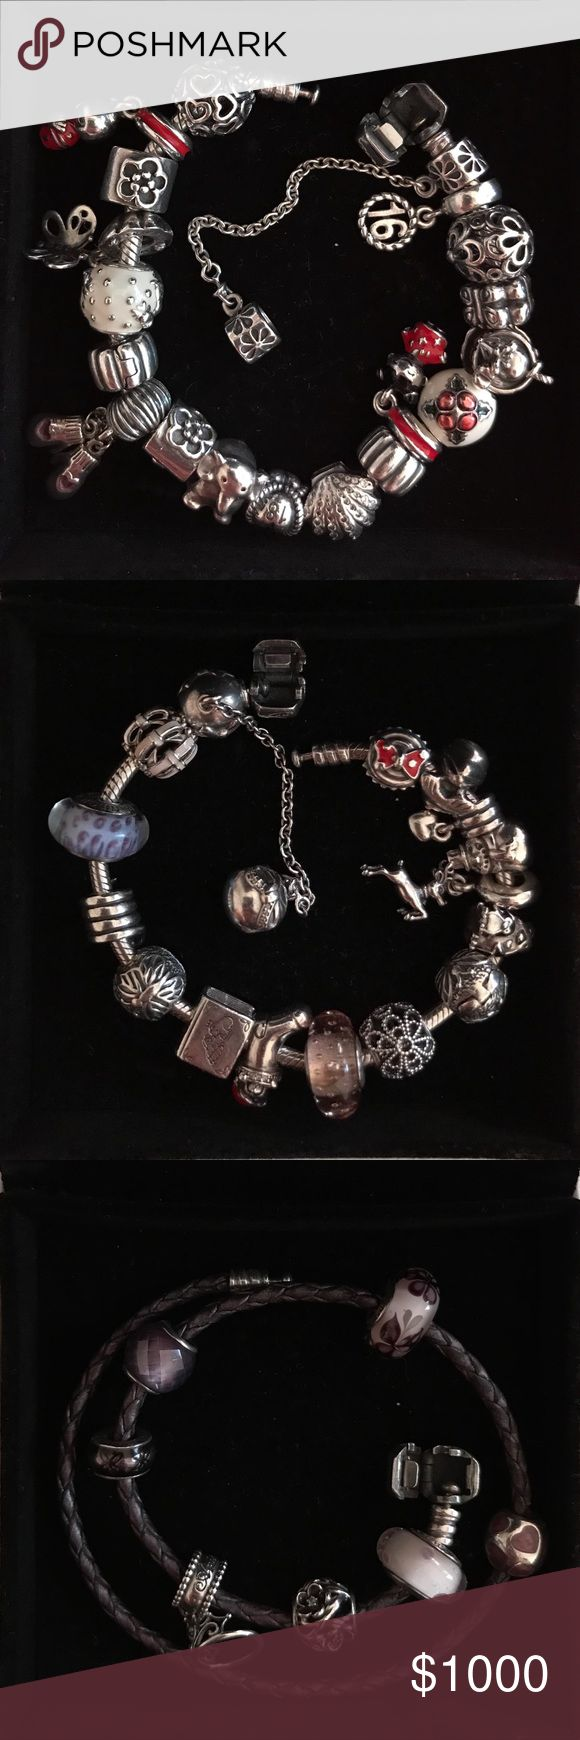 PANDORA Sale! ✨ All charms and bracelets are authentic, in great condition and preowned, ✨ Bracelets are on sale too- bundle or separate ✨  Majority of the charms are retired/discontinued, ✨ Comment if interested in any of the charms or bracelets- OFFERS WELCOMED! Pandora Jewelry Bracelets